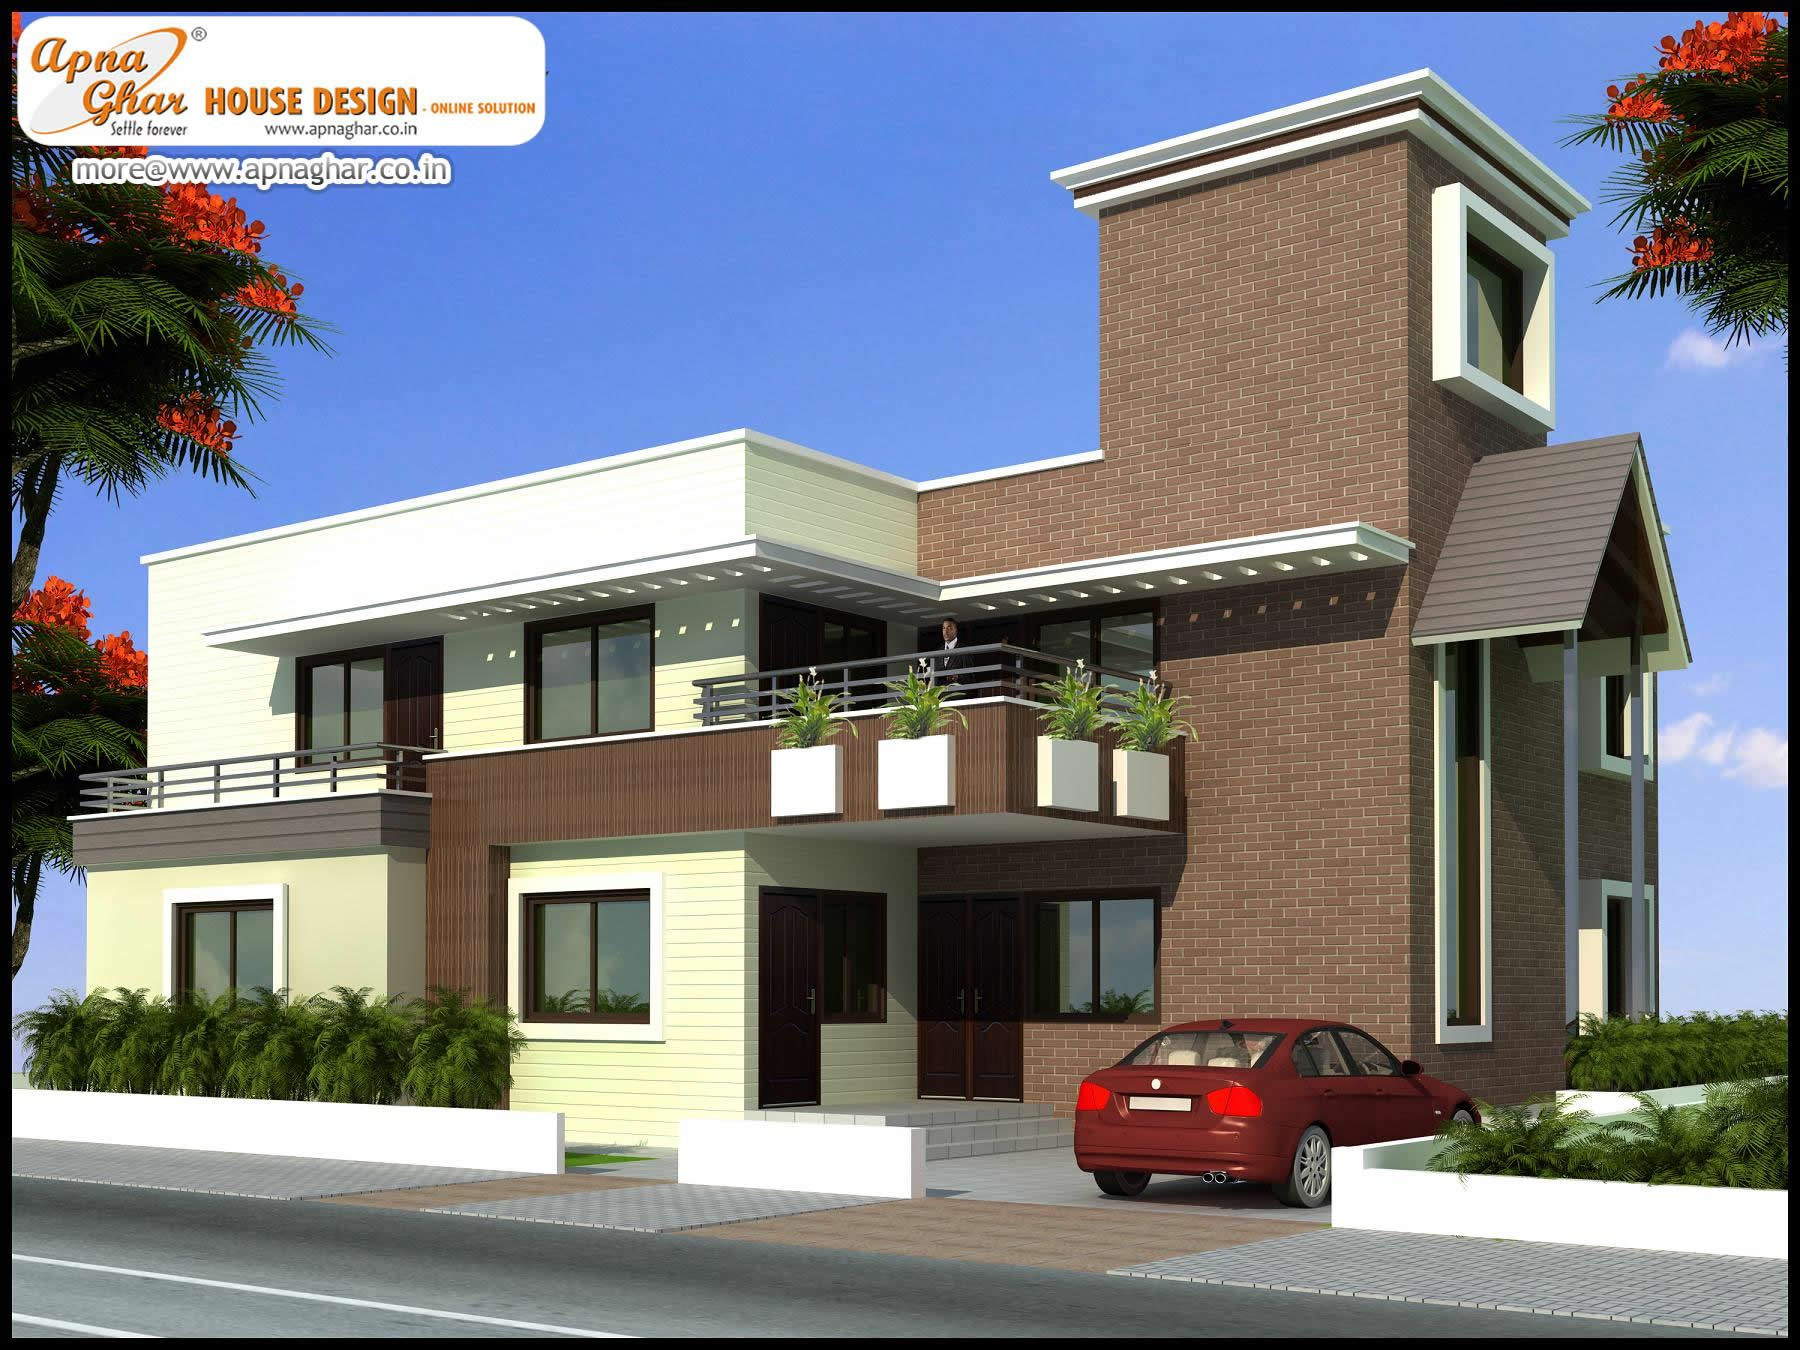 5 bedroom duplex 2 floor house design area 357m2 21m x 17m